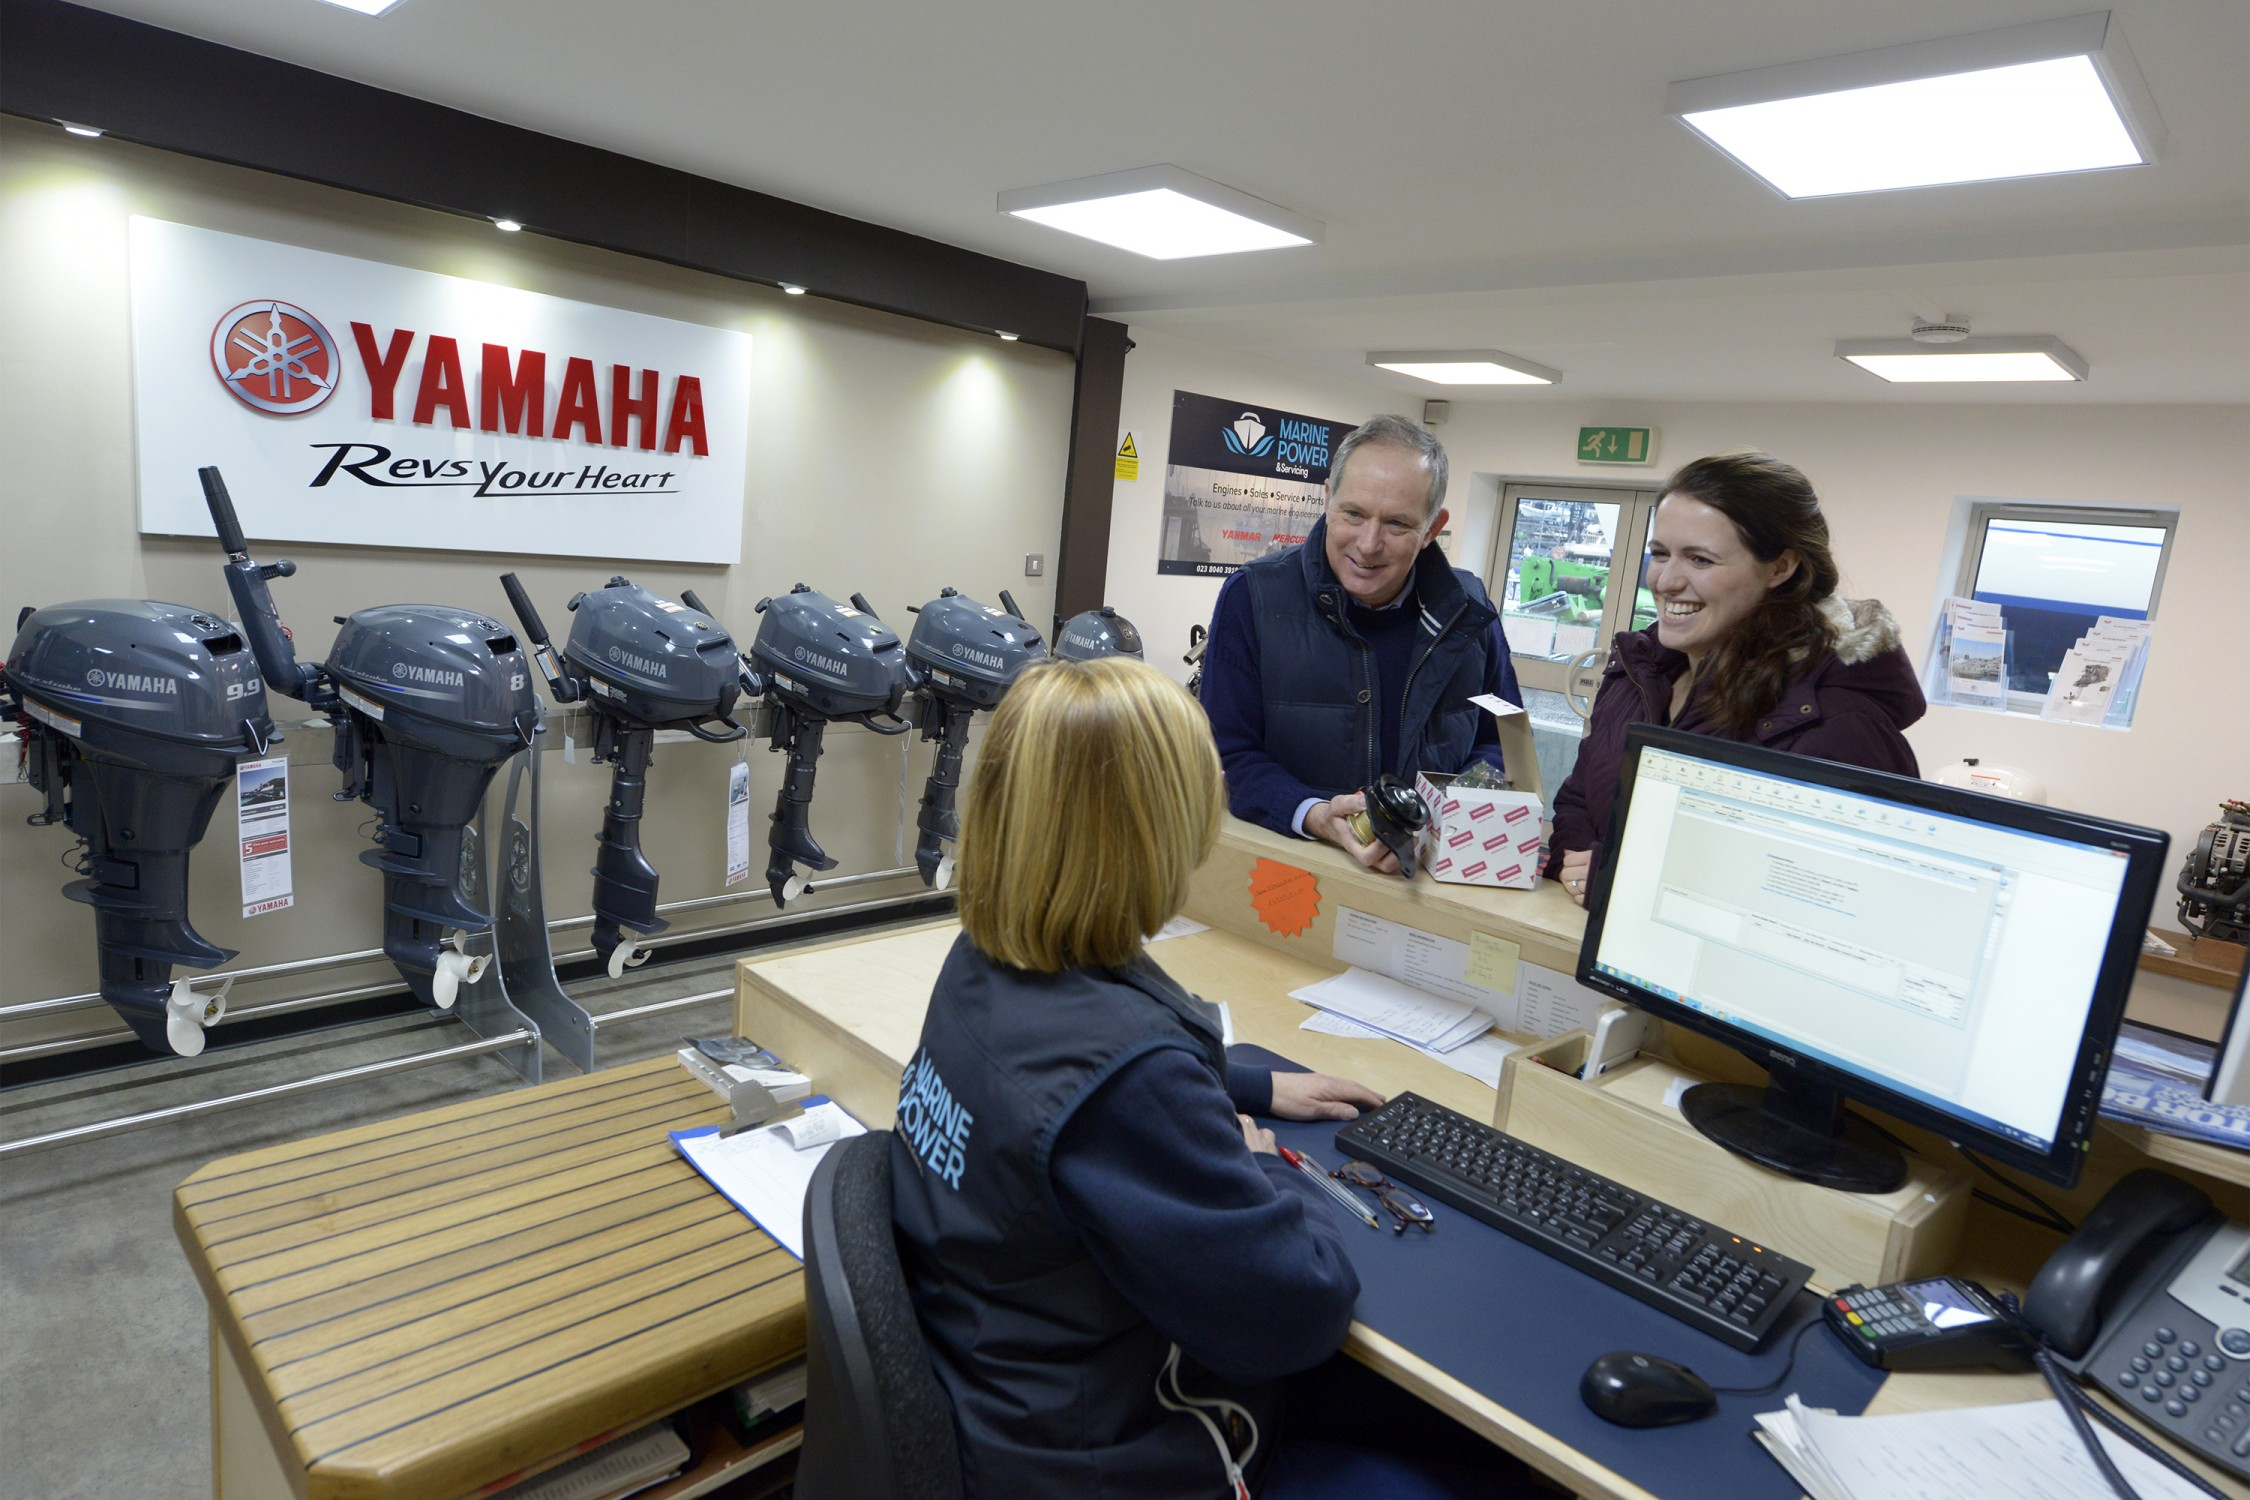 Marine Power appointed as a Yamaha Sales Agent and Service Centre